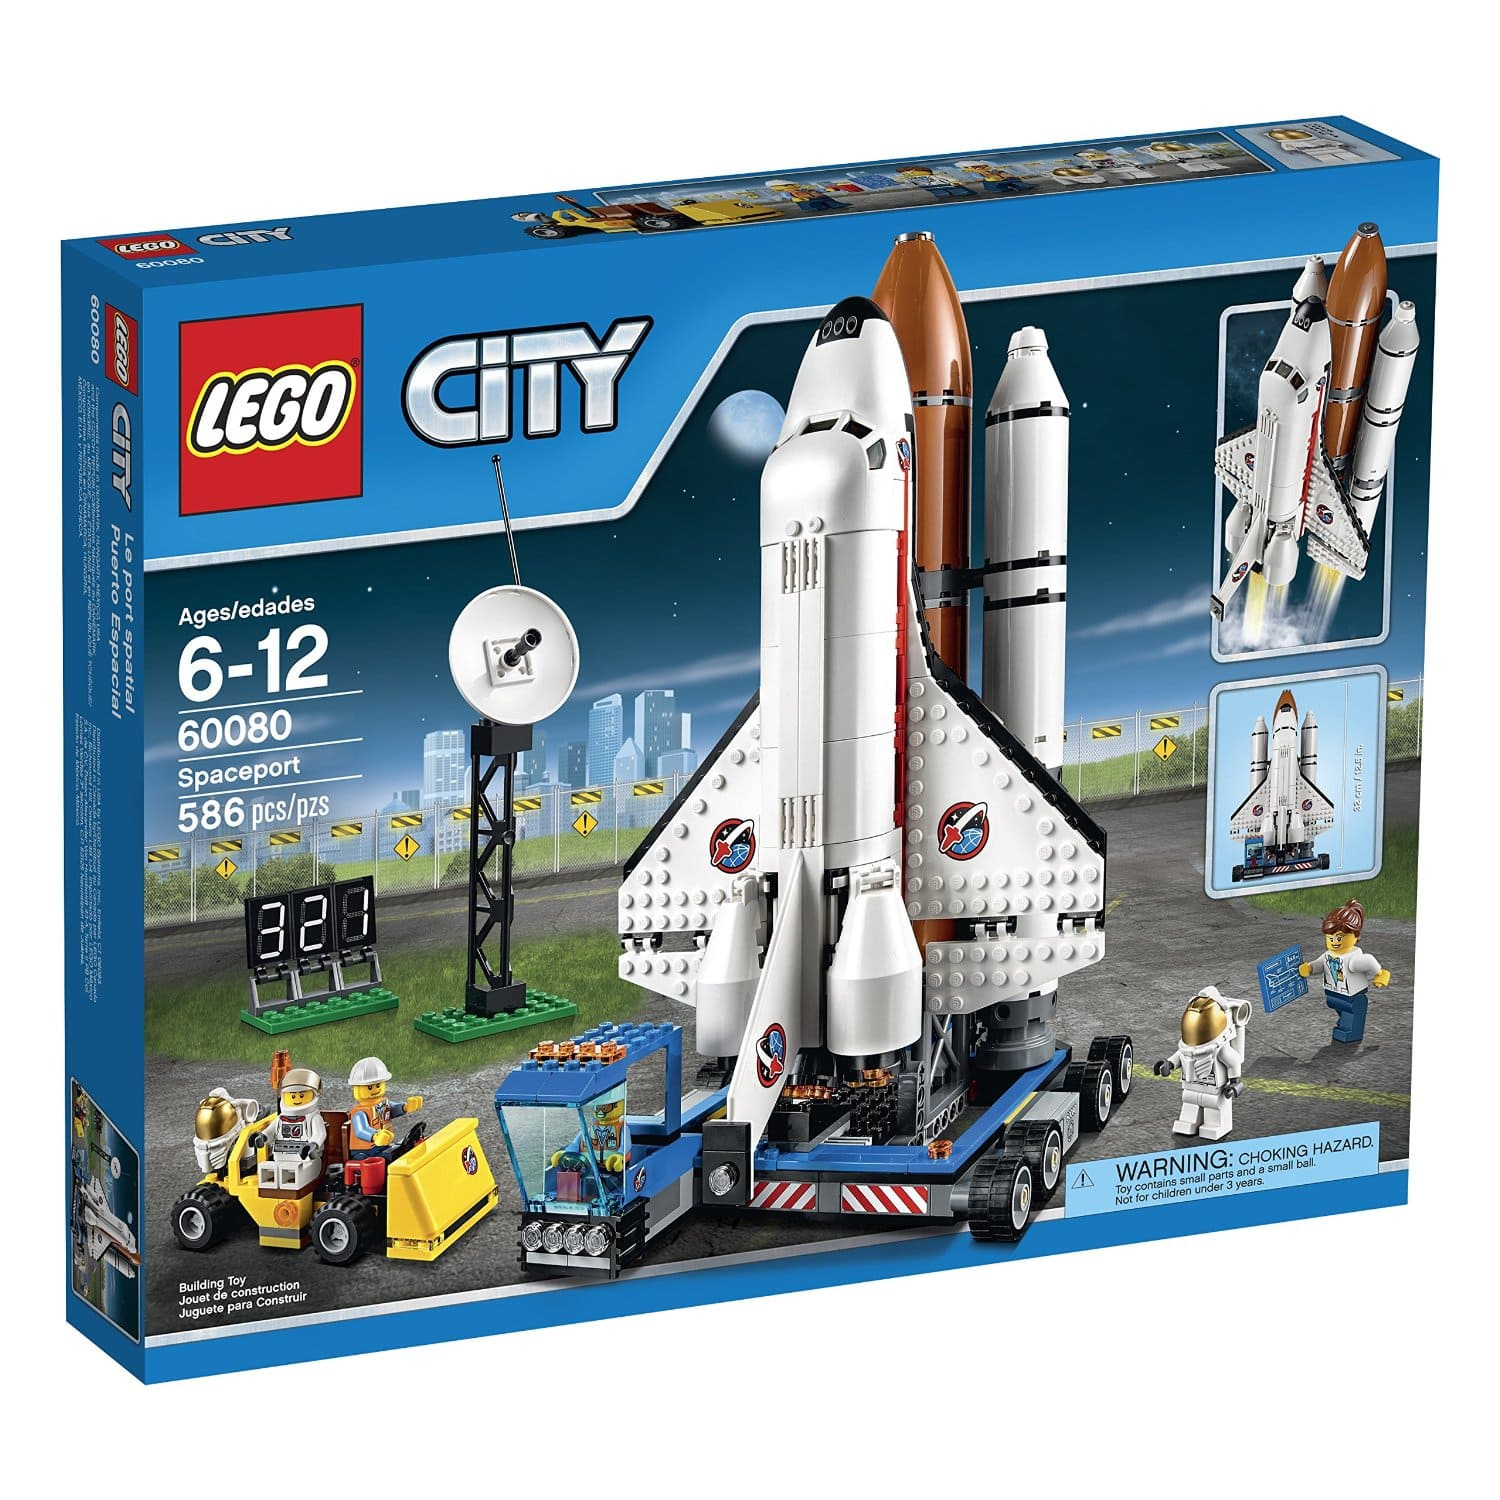 LEGO City Space Port 60080 - $83 + Free Shipping